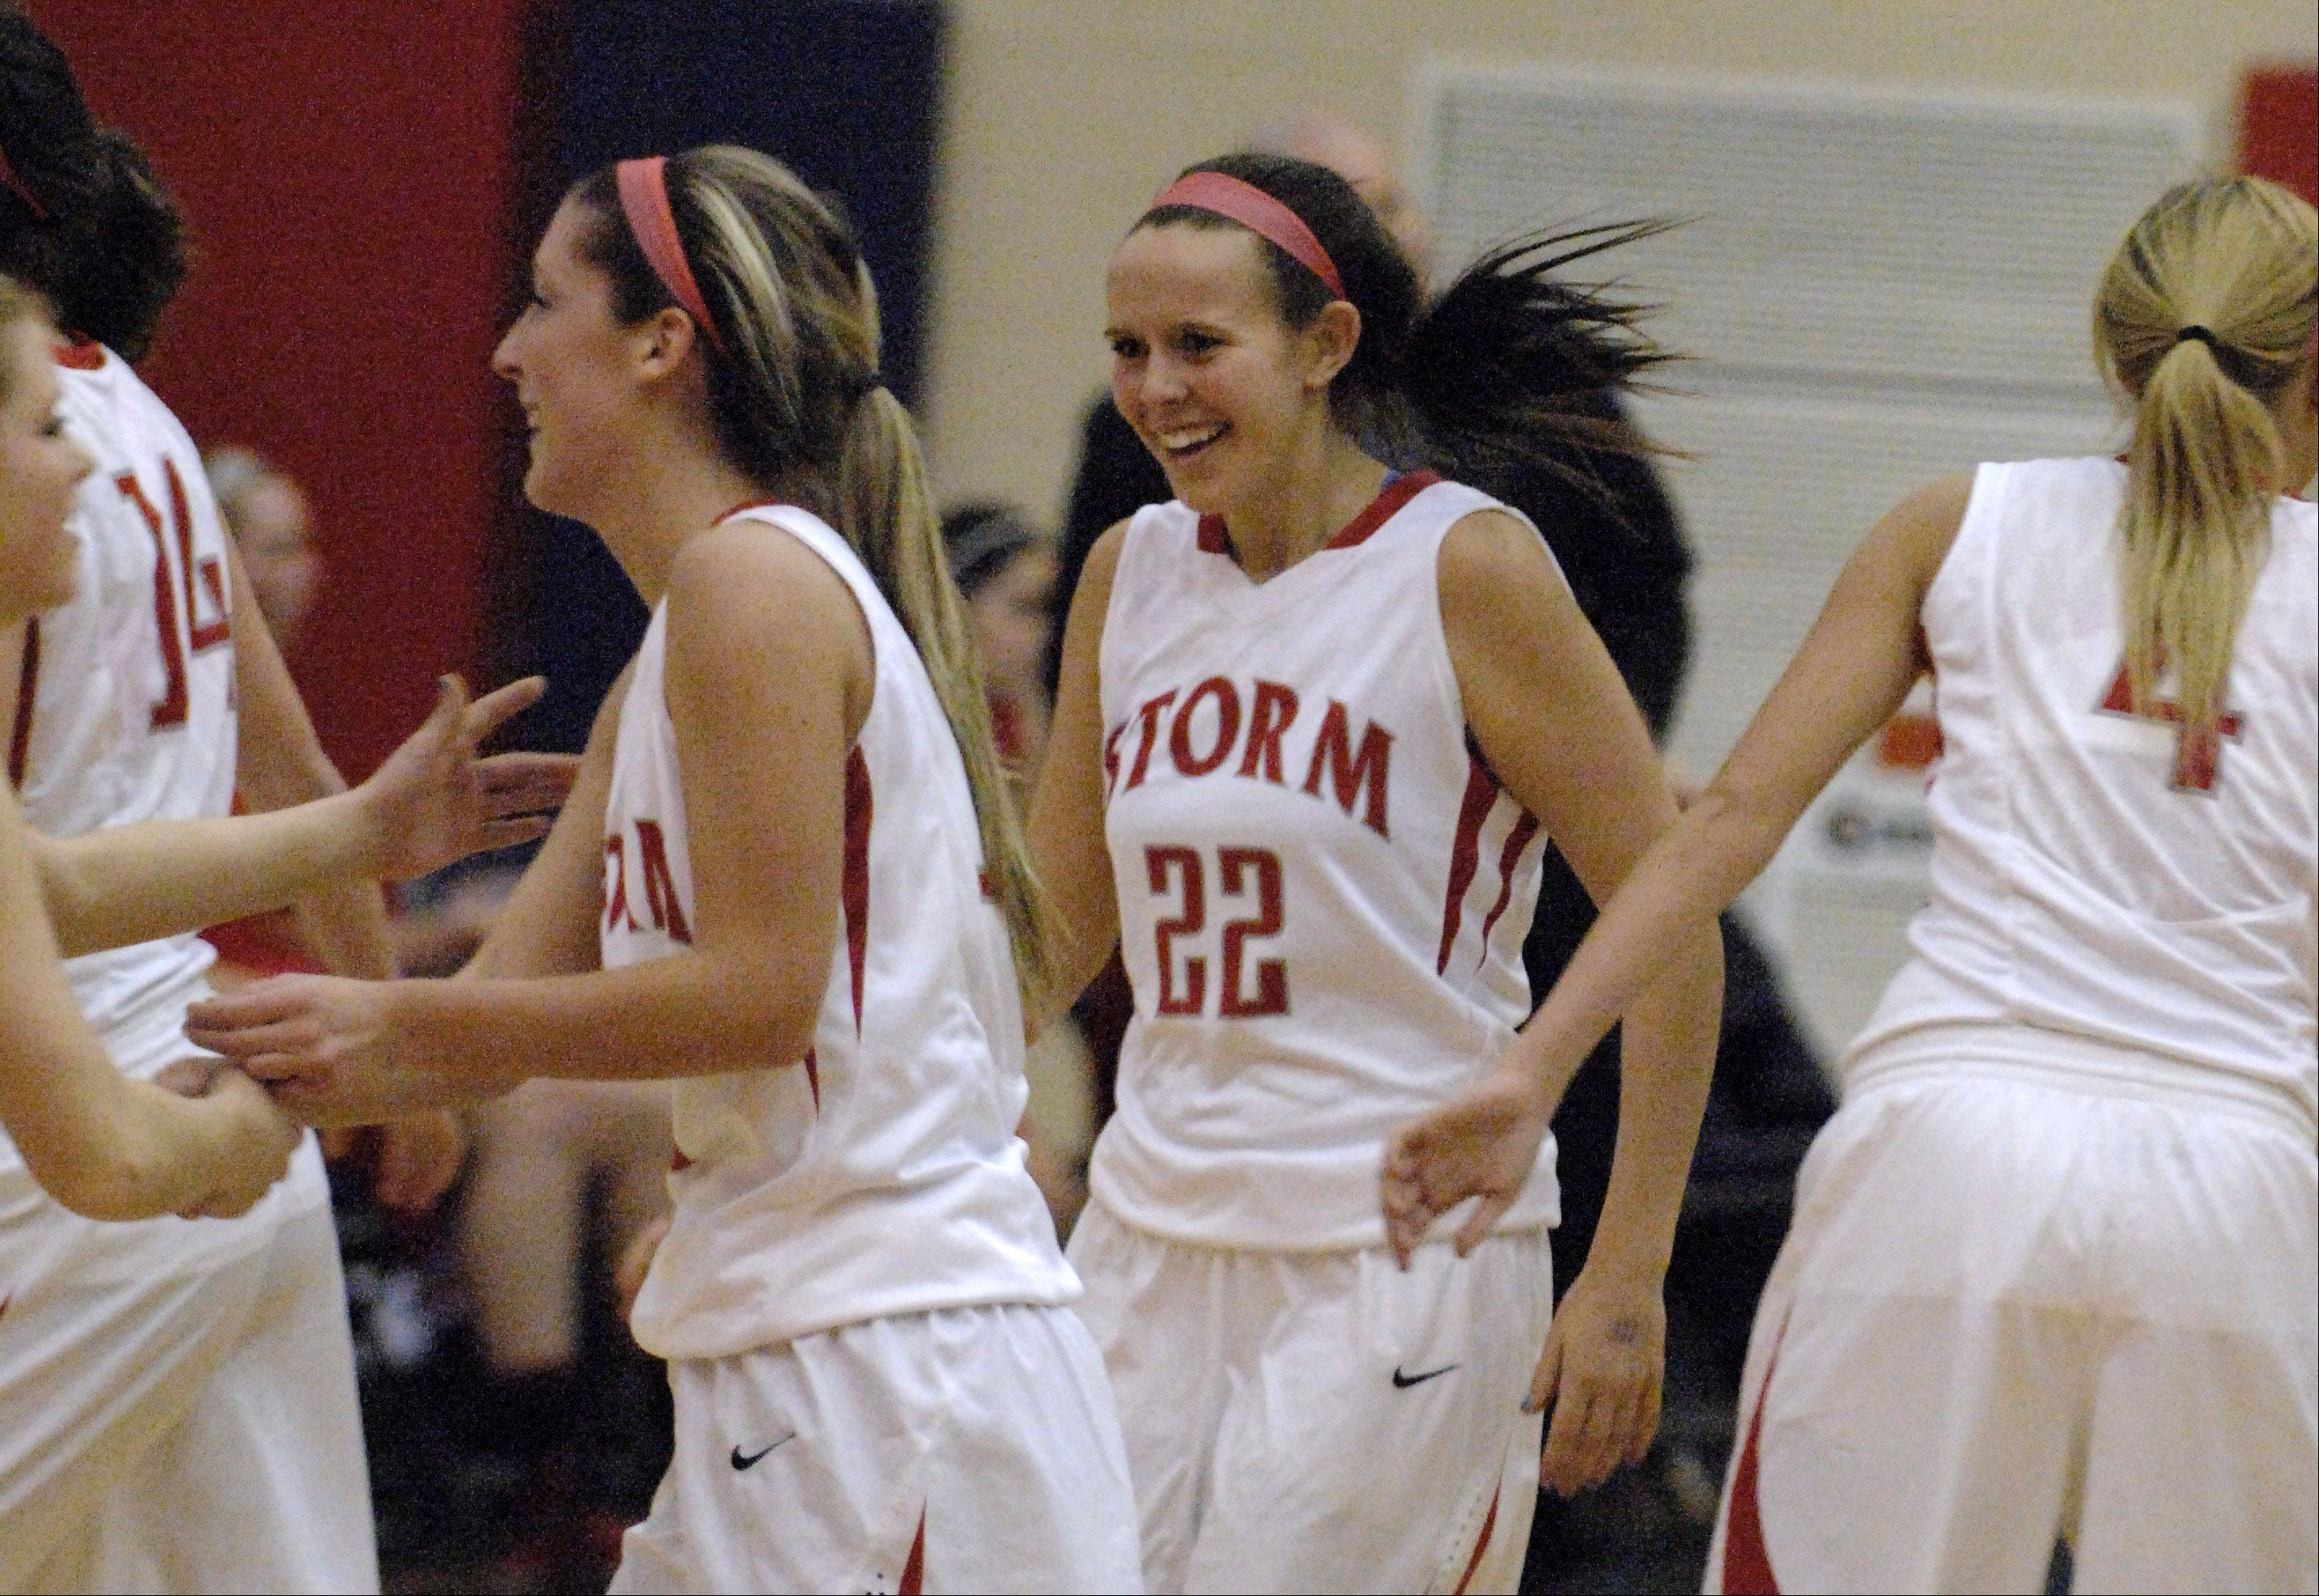 Images from the Batavia vs. South Elgin girls basketball game Thursday, February 7, 2013.